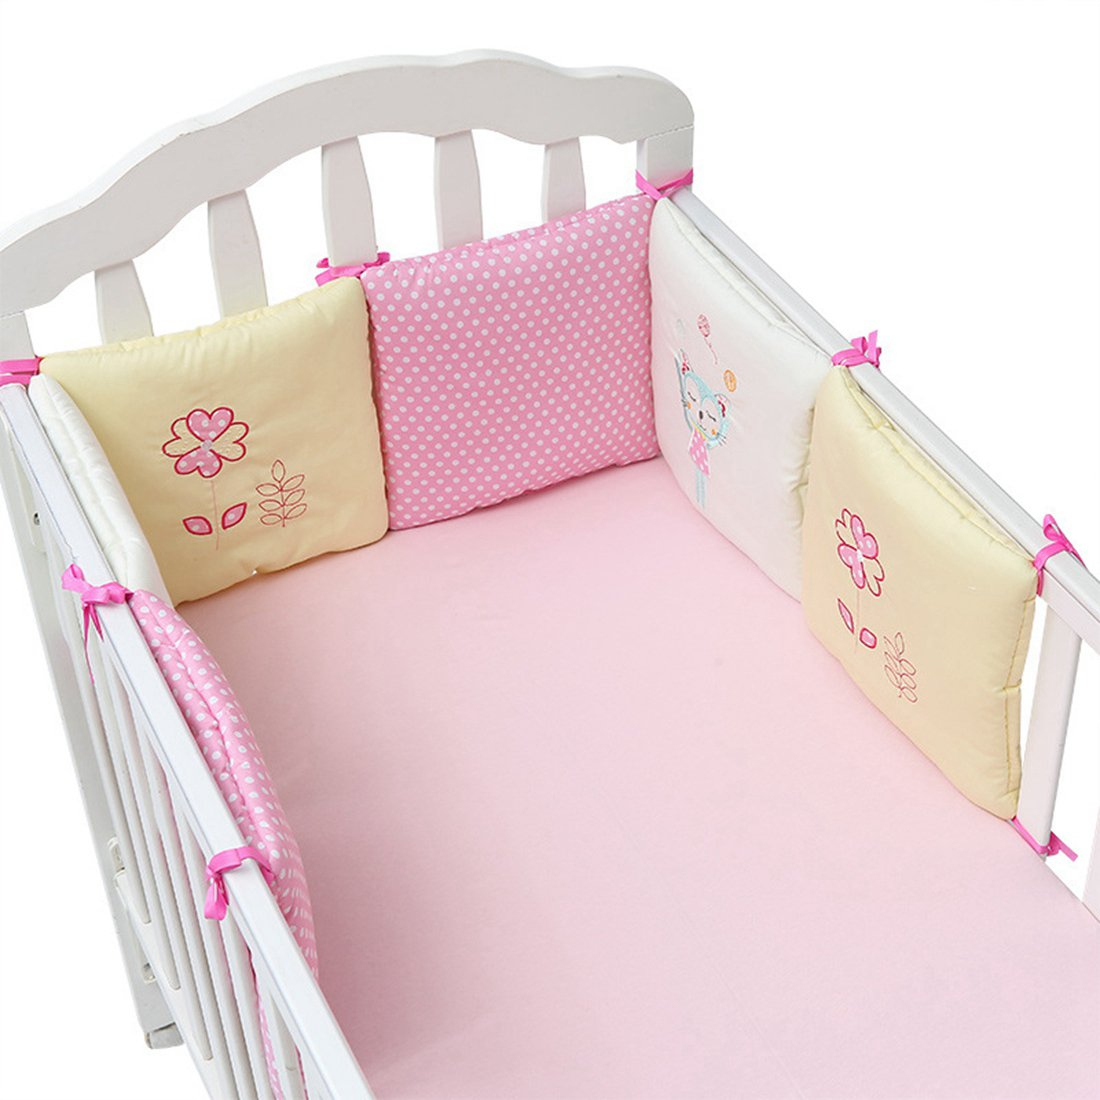 Neobang Cot Bumpers Breathable Padded Crib Bumper Set Crib Liner Cradle Rail Guard 6PCs Beige